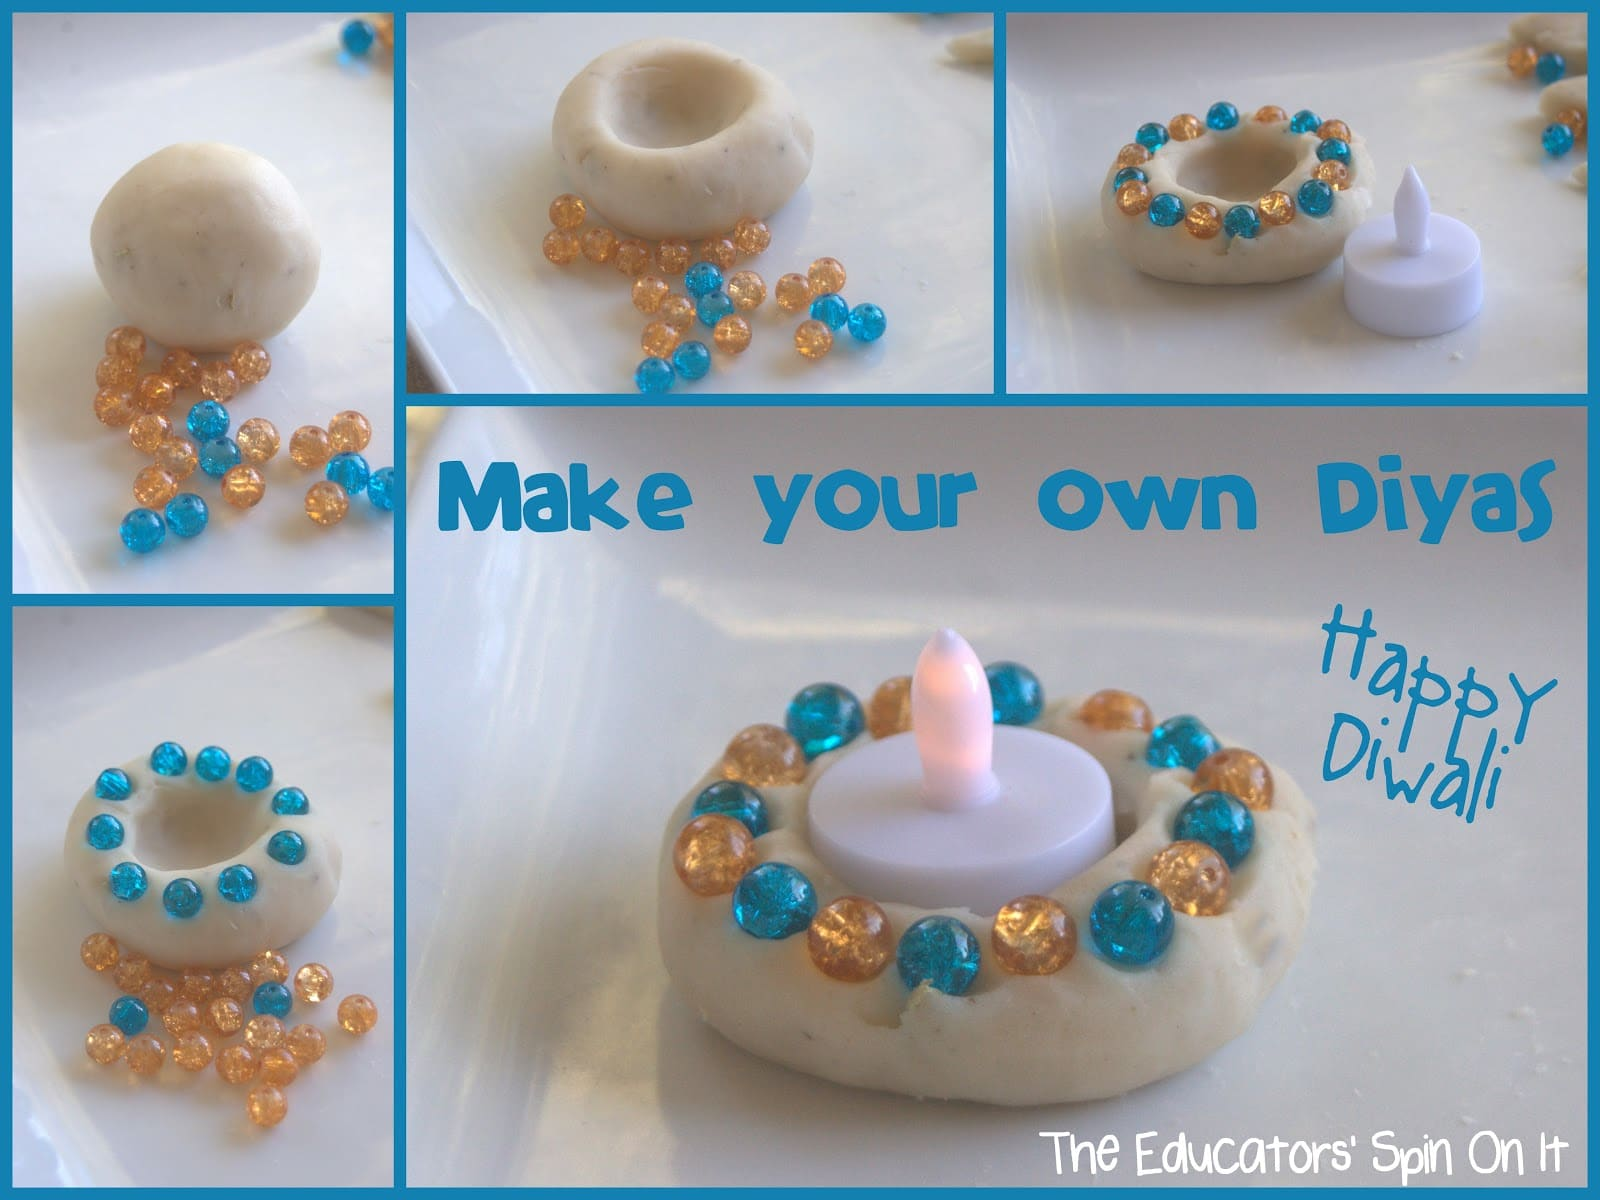 diwali activities for preschoolers make your own diyas for diwali the educators spin on it 468